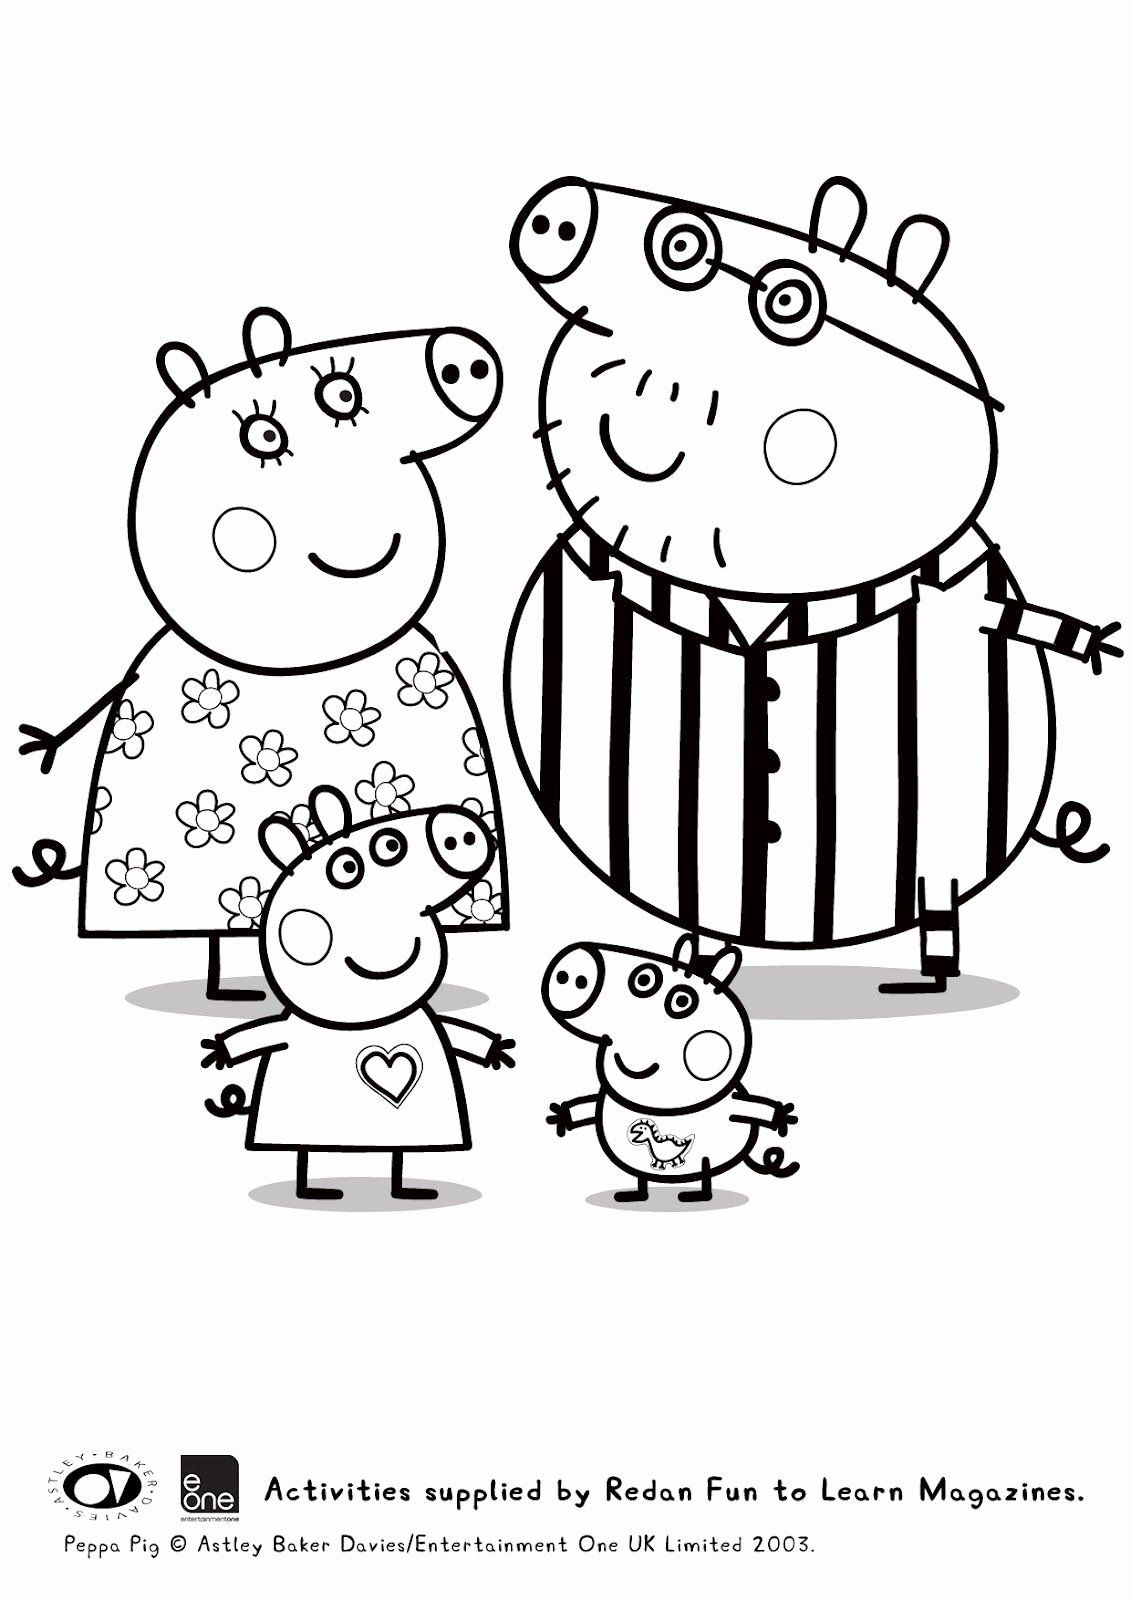 Coloring Learning Activities Elegant 54 Free Peppa Pig Coloring Pages Peppa Pig Coloring Pages Turtle Coloring Pages Peppa Pig Colouring